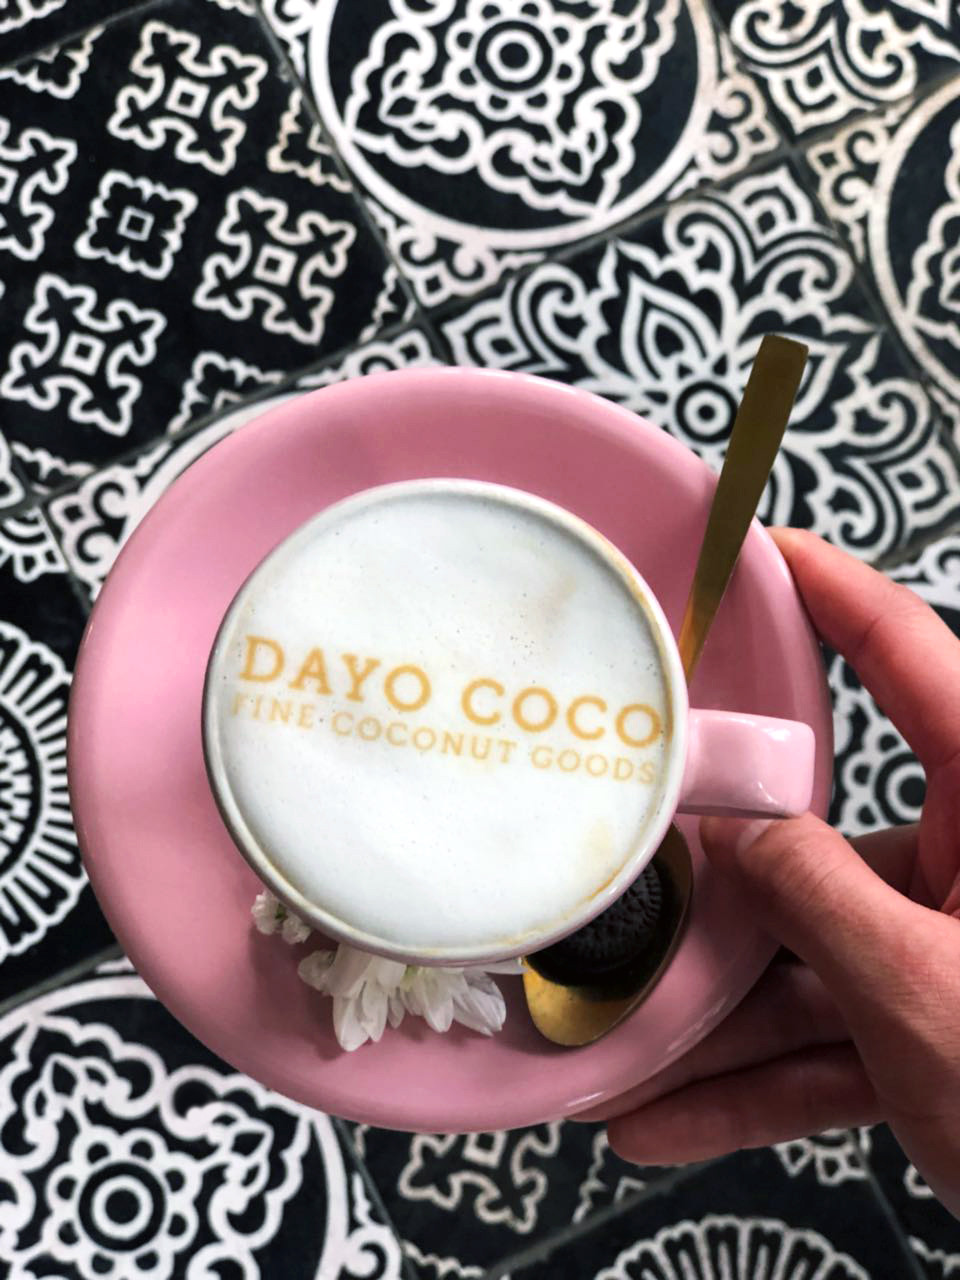 Dayo Coco Coffee Guide